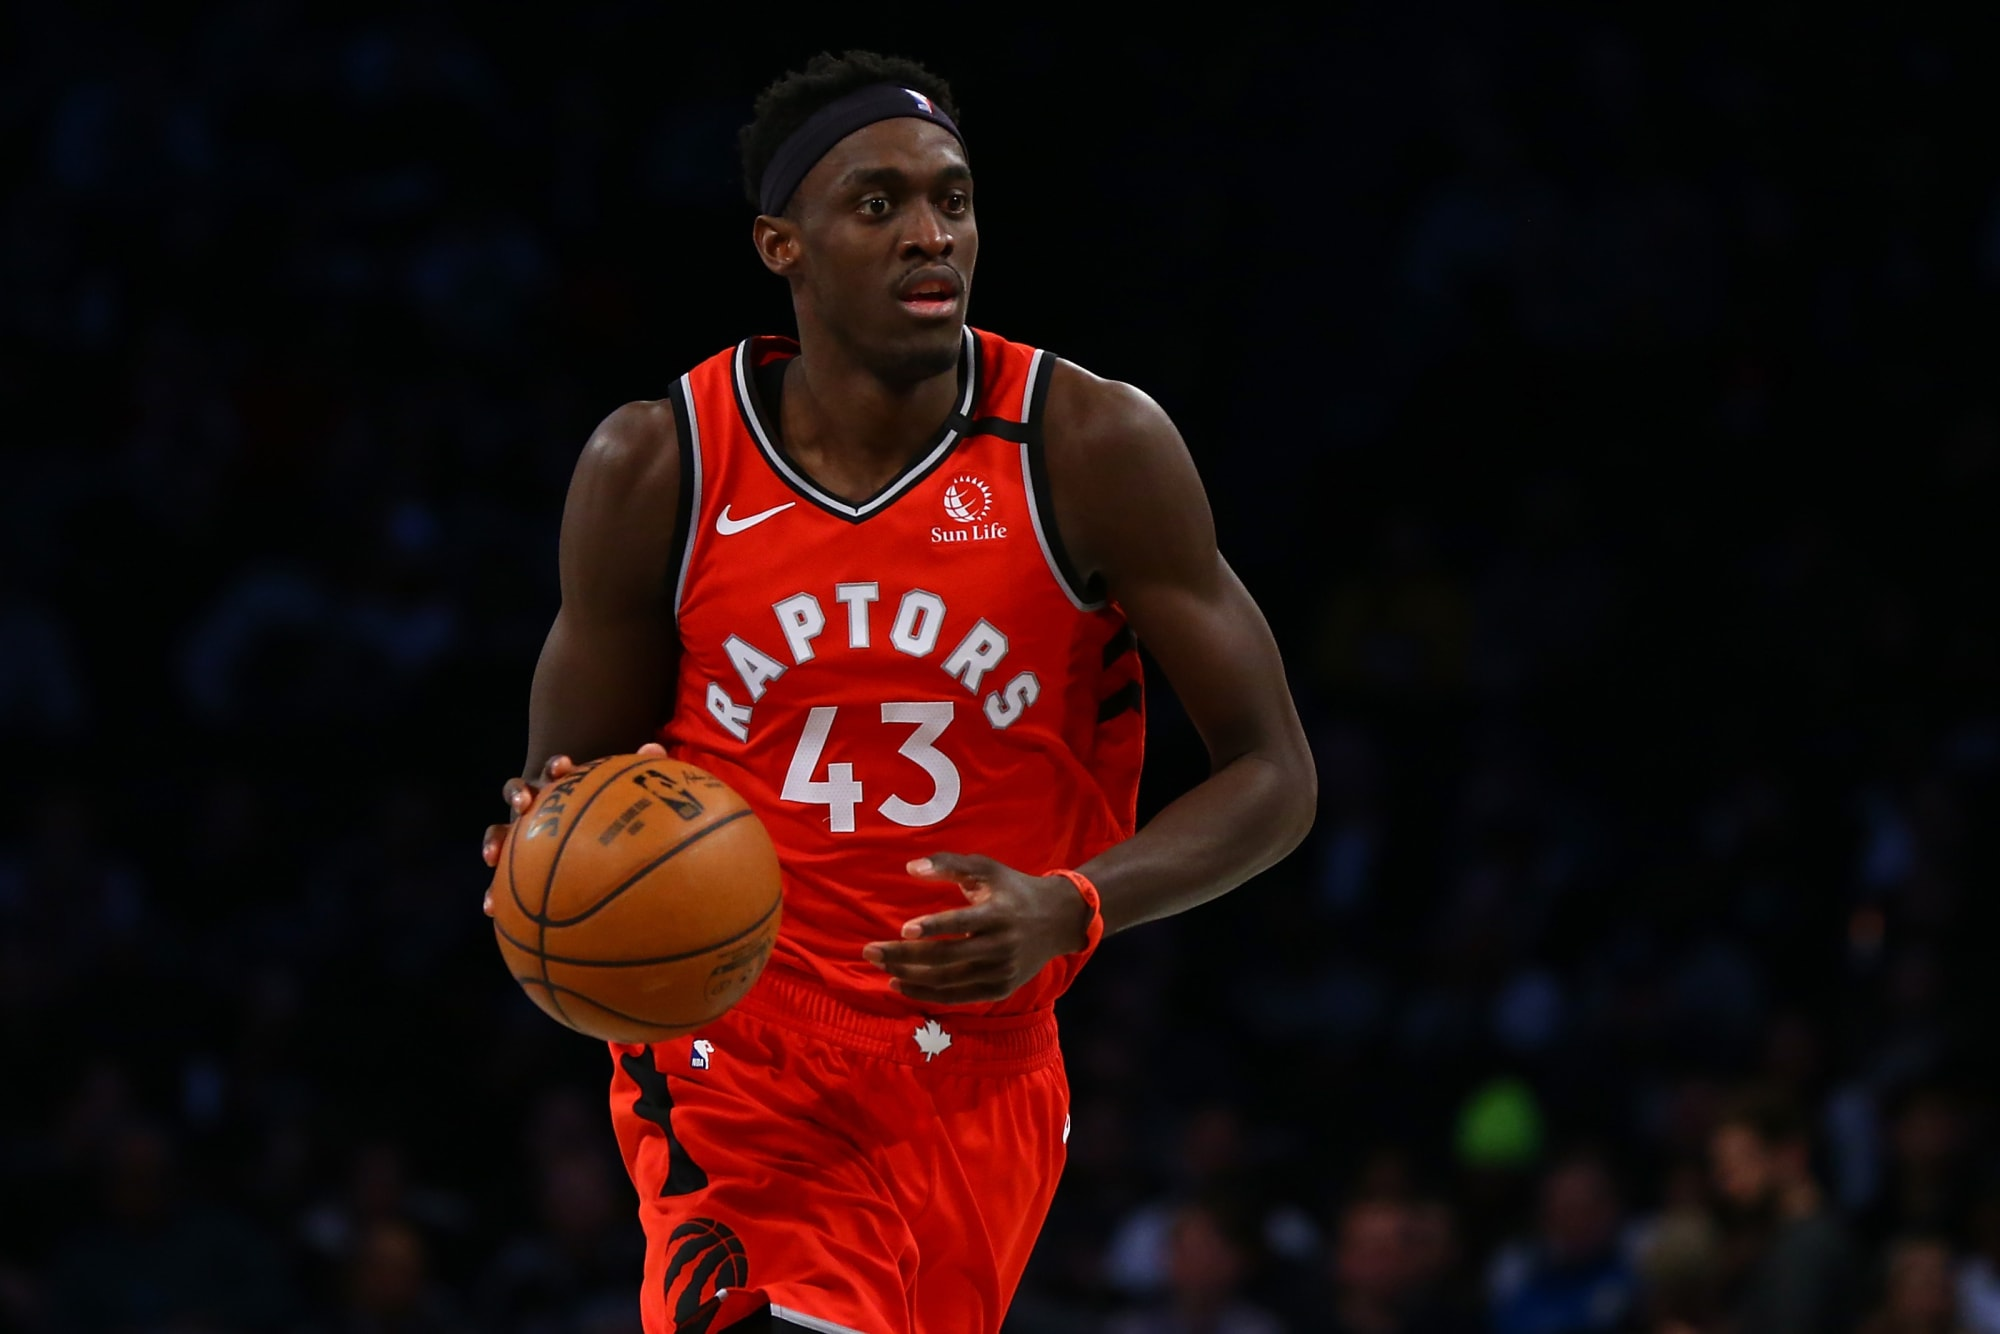 Toronto Raptors: Pascal Siakam's success will go as far as his shooting takes him